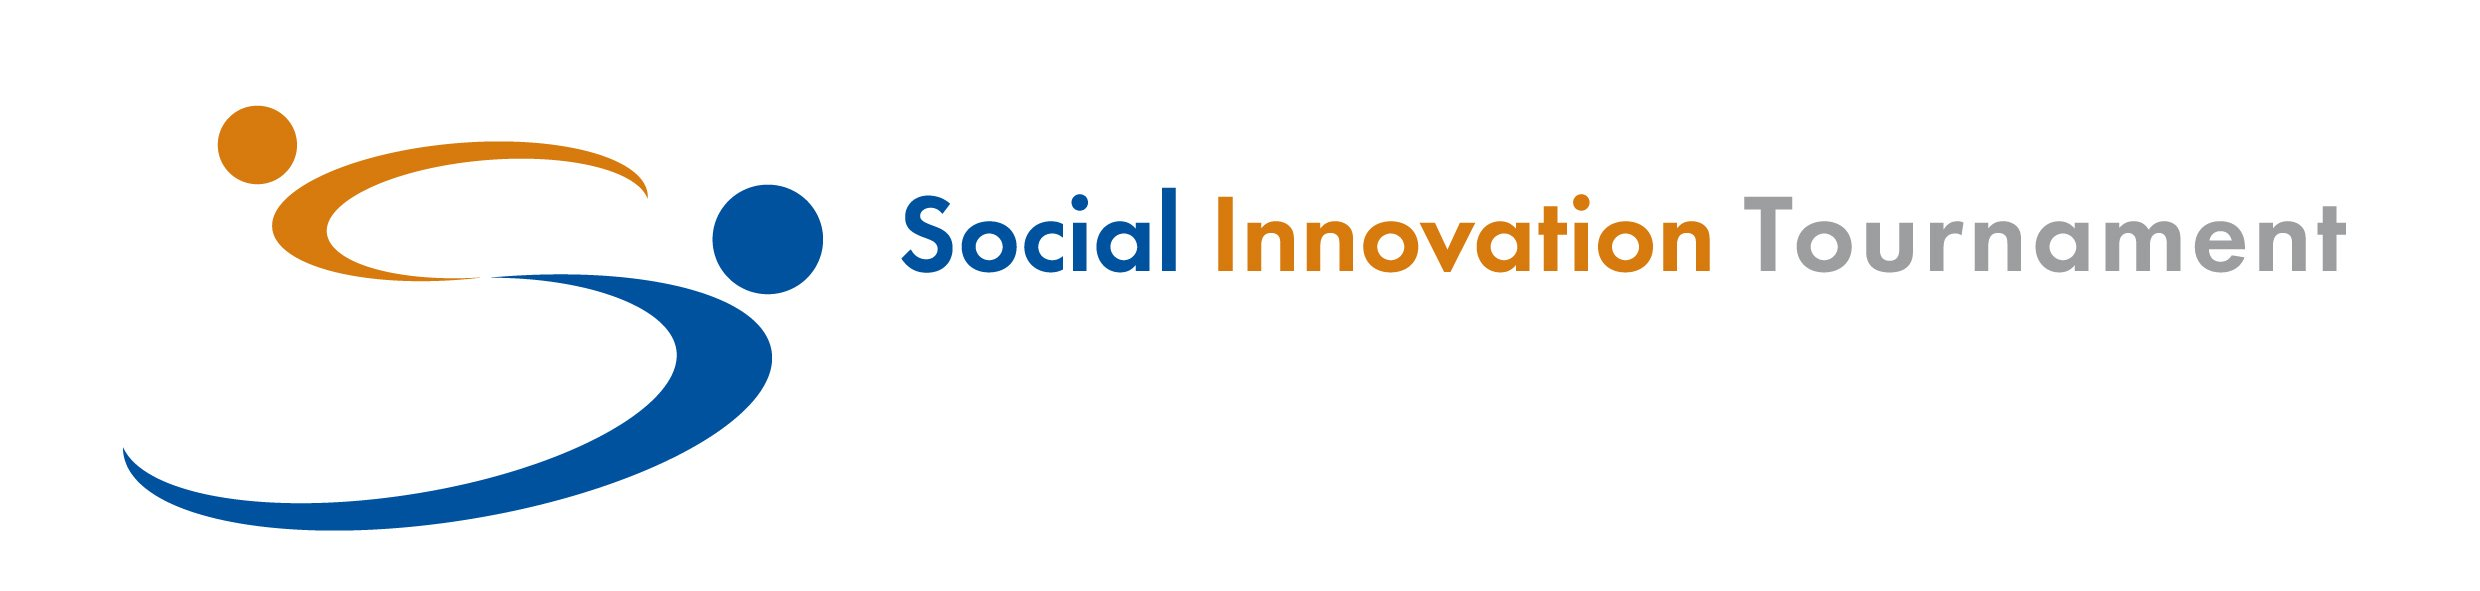 Social Innovation Tournament